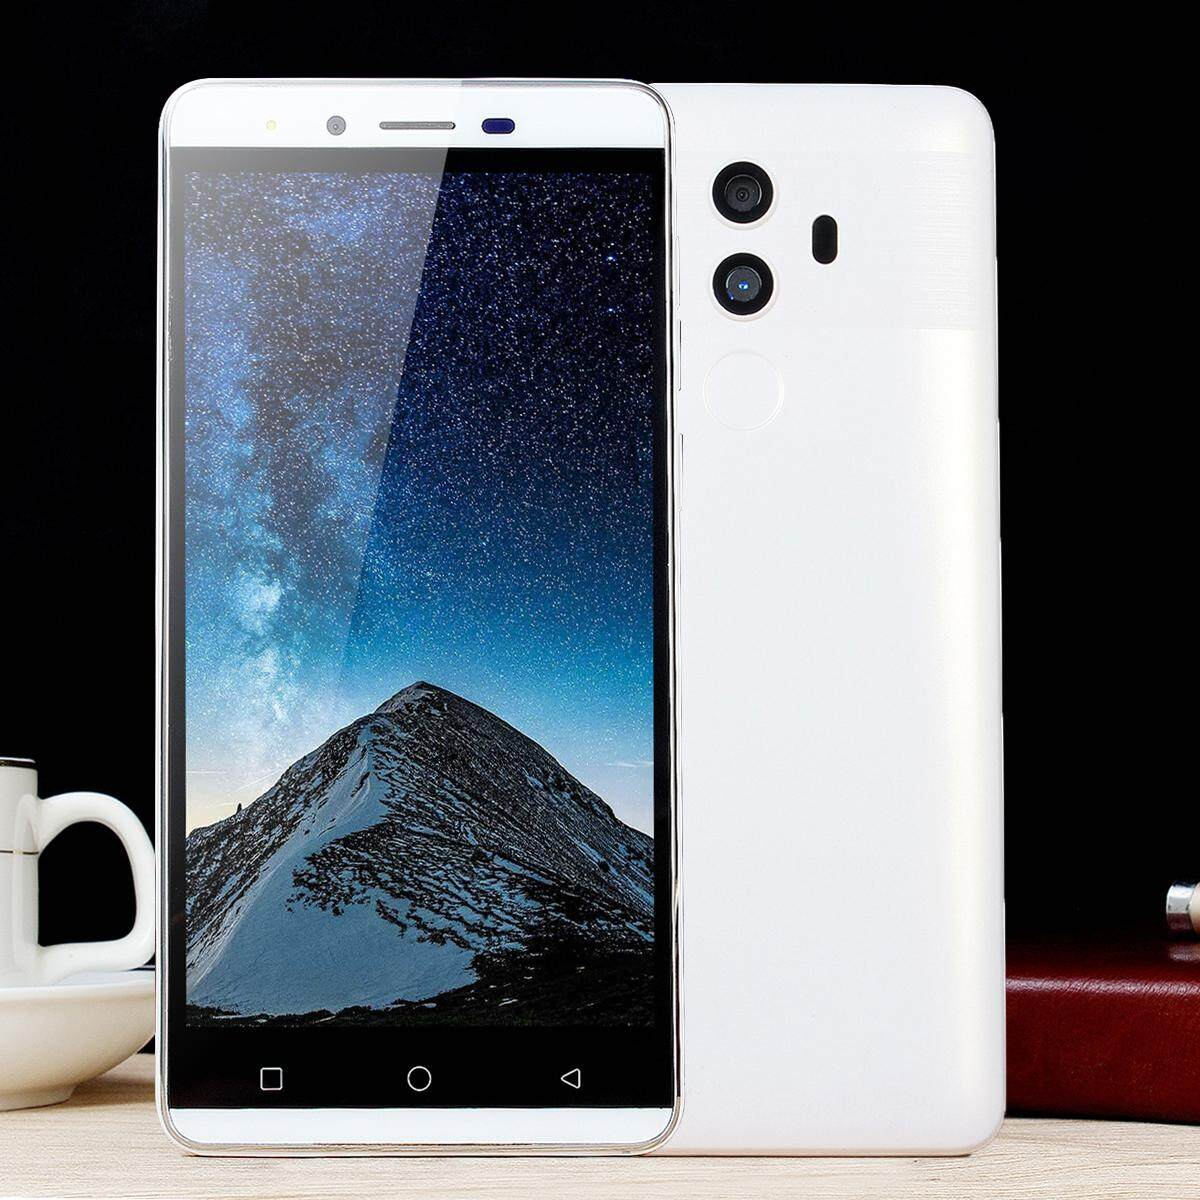 5.0 M10 Unlocked Android 5.1 4G Cell Phone Smartphone 1+4GB Quad Core Dual SIM